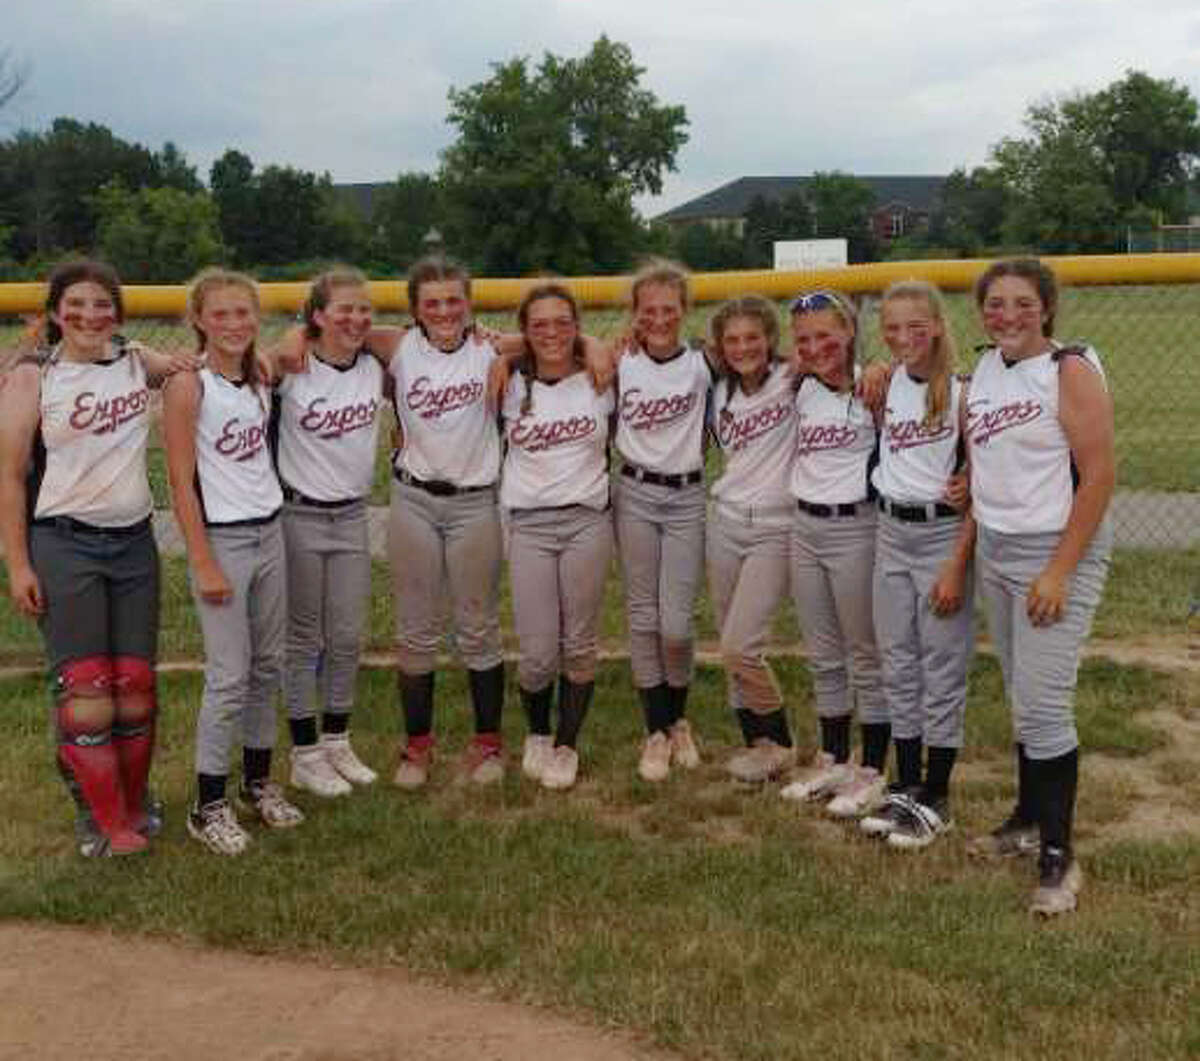 Local Michigan Expos players include: Addie Edwards, Paityn Enos, Kayla Winters, Kylynn Thompson, Calli Duncan, Kyrah Gray, Jilly Decker, Keira Elder, Elizabeth Anderson and Mattisen Tiedt. Not pictured are coaches Shaun Gray and Aaron Anderson and players Ella Wilson and Savannah Buzzelli.